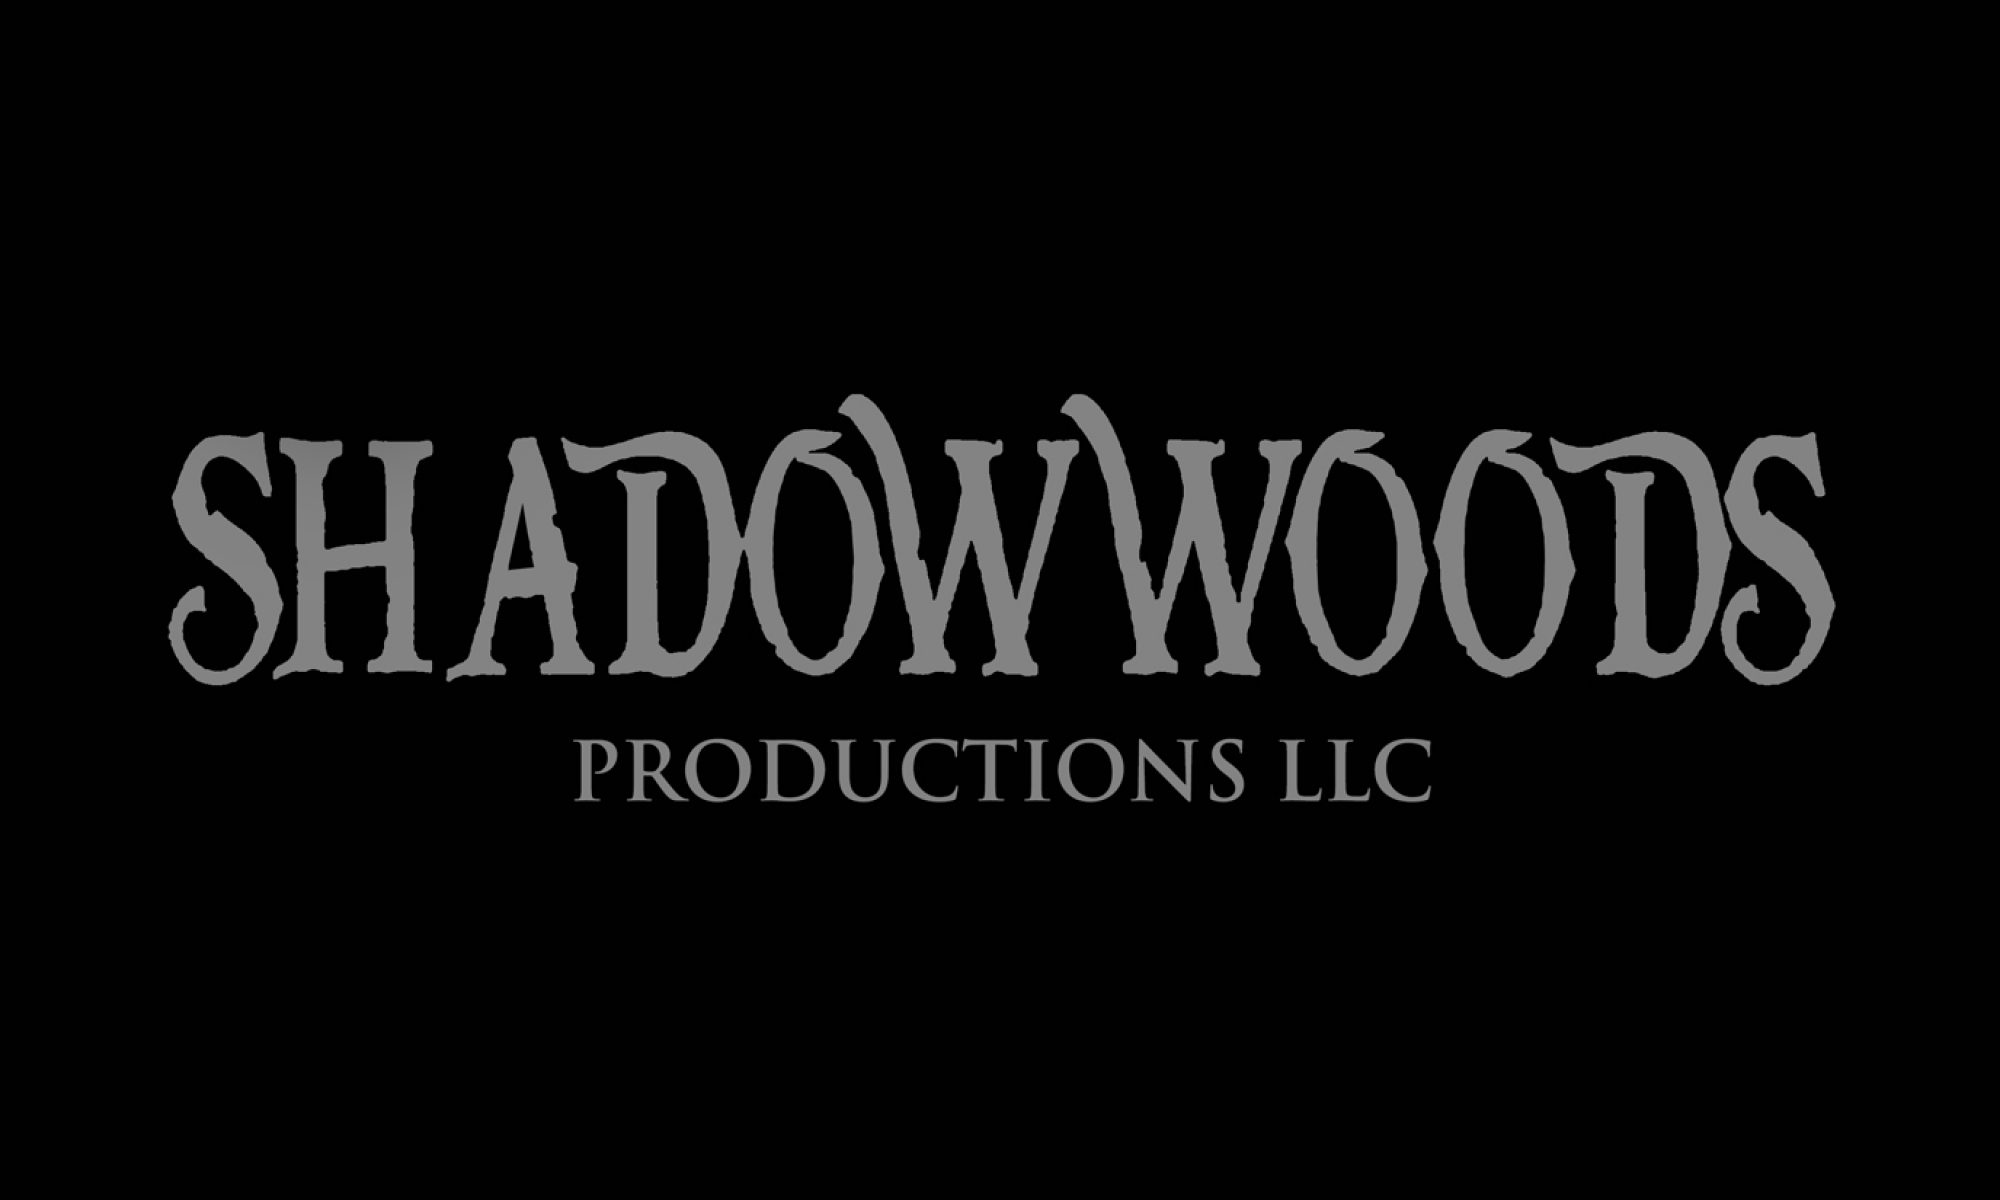 Shadow Woods Productions LLC